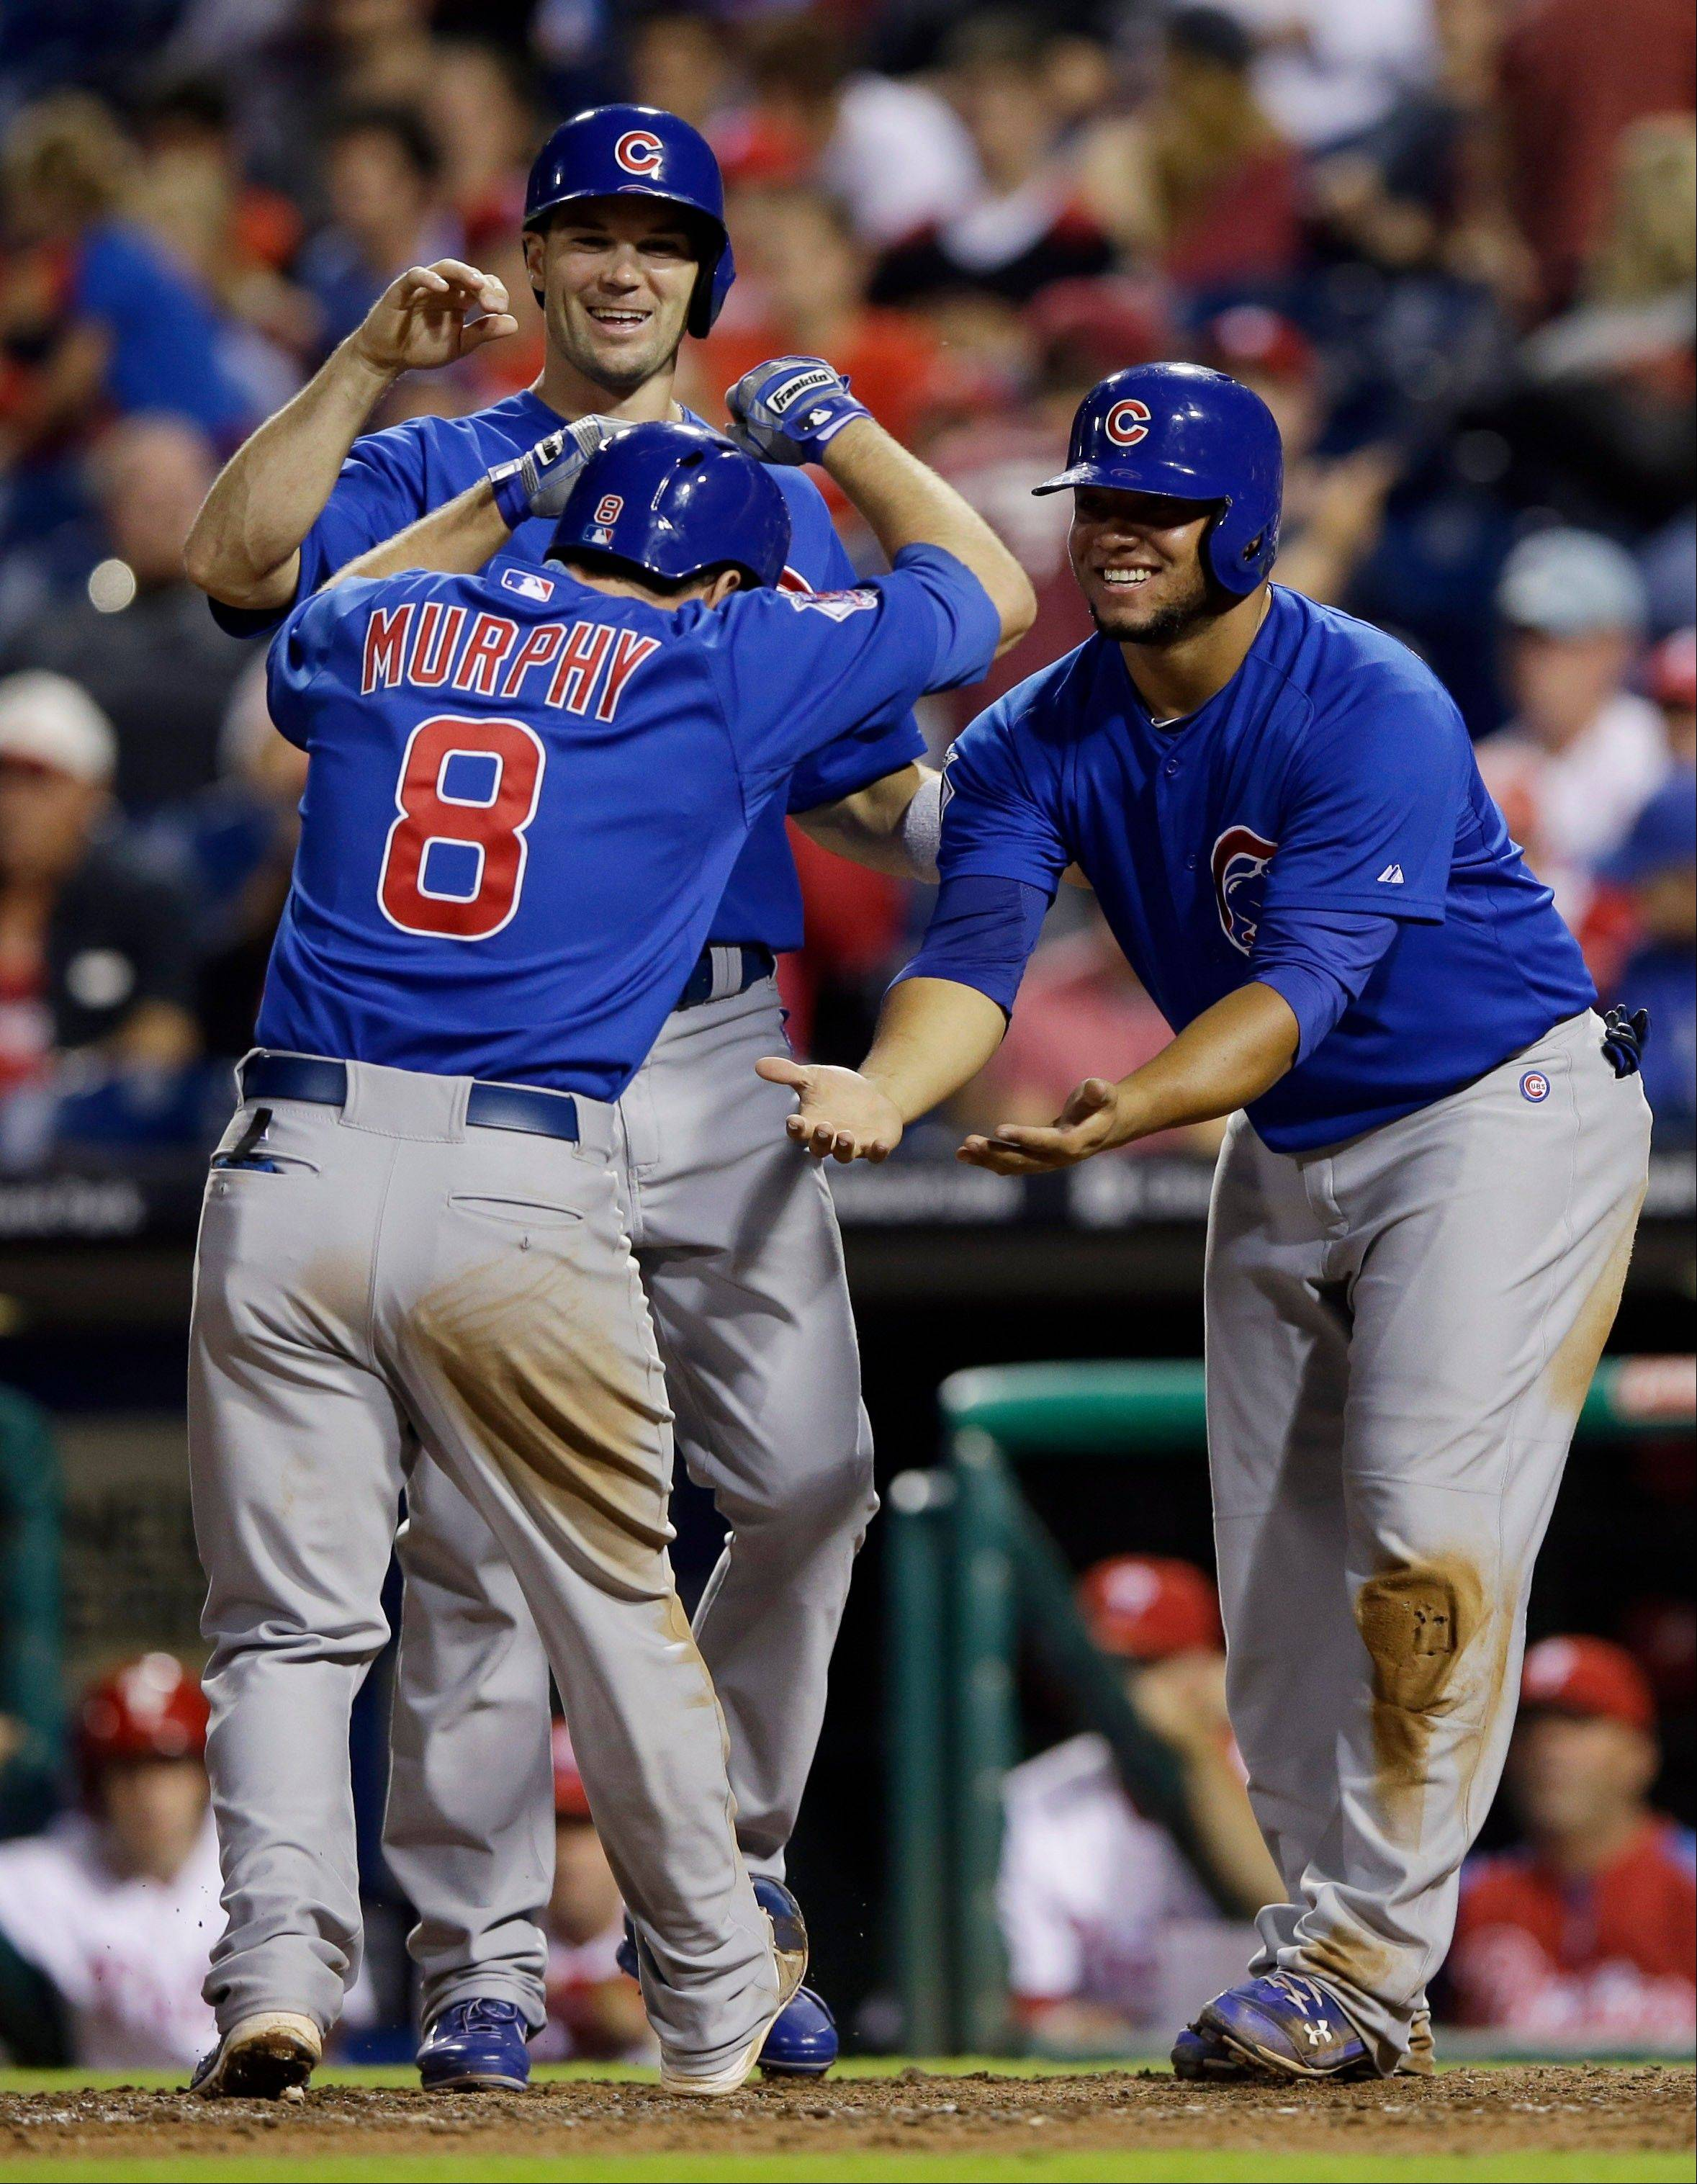 Chicago Cubs' Donnie Murphy, center, celebrates with Cole Gillespie, left, and Welington Castillo after Murphy's three-run home run during the ninth inning of a baseball game against the Philadelphia Phillies, Wednesday, Aug. 7, 2013, in Philadelphia. Chicago won 5-2.